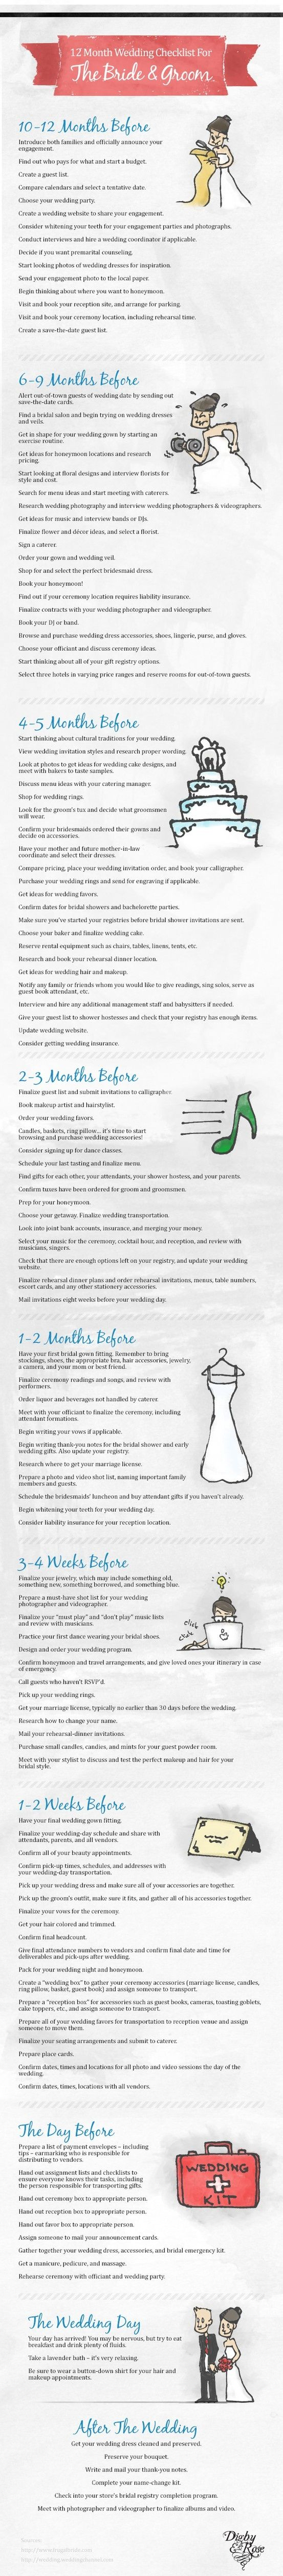 Wedding checklist- 12 months out through to the days after - NOTE: I'd make a few adjustments to this: No massage day before wedding...it won't work you'll be too tense. Keep trying on your dress frequently in the weeks leading up to the wedding in case you've lost weight - you want to leave plenty of time for alterations if necessary.